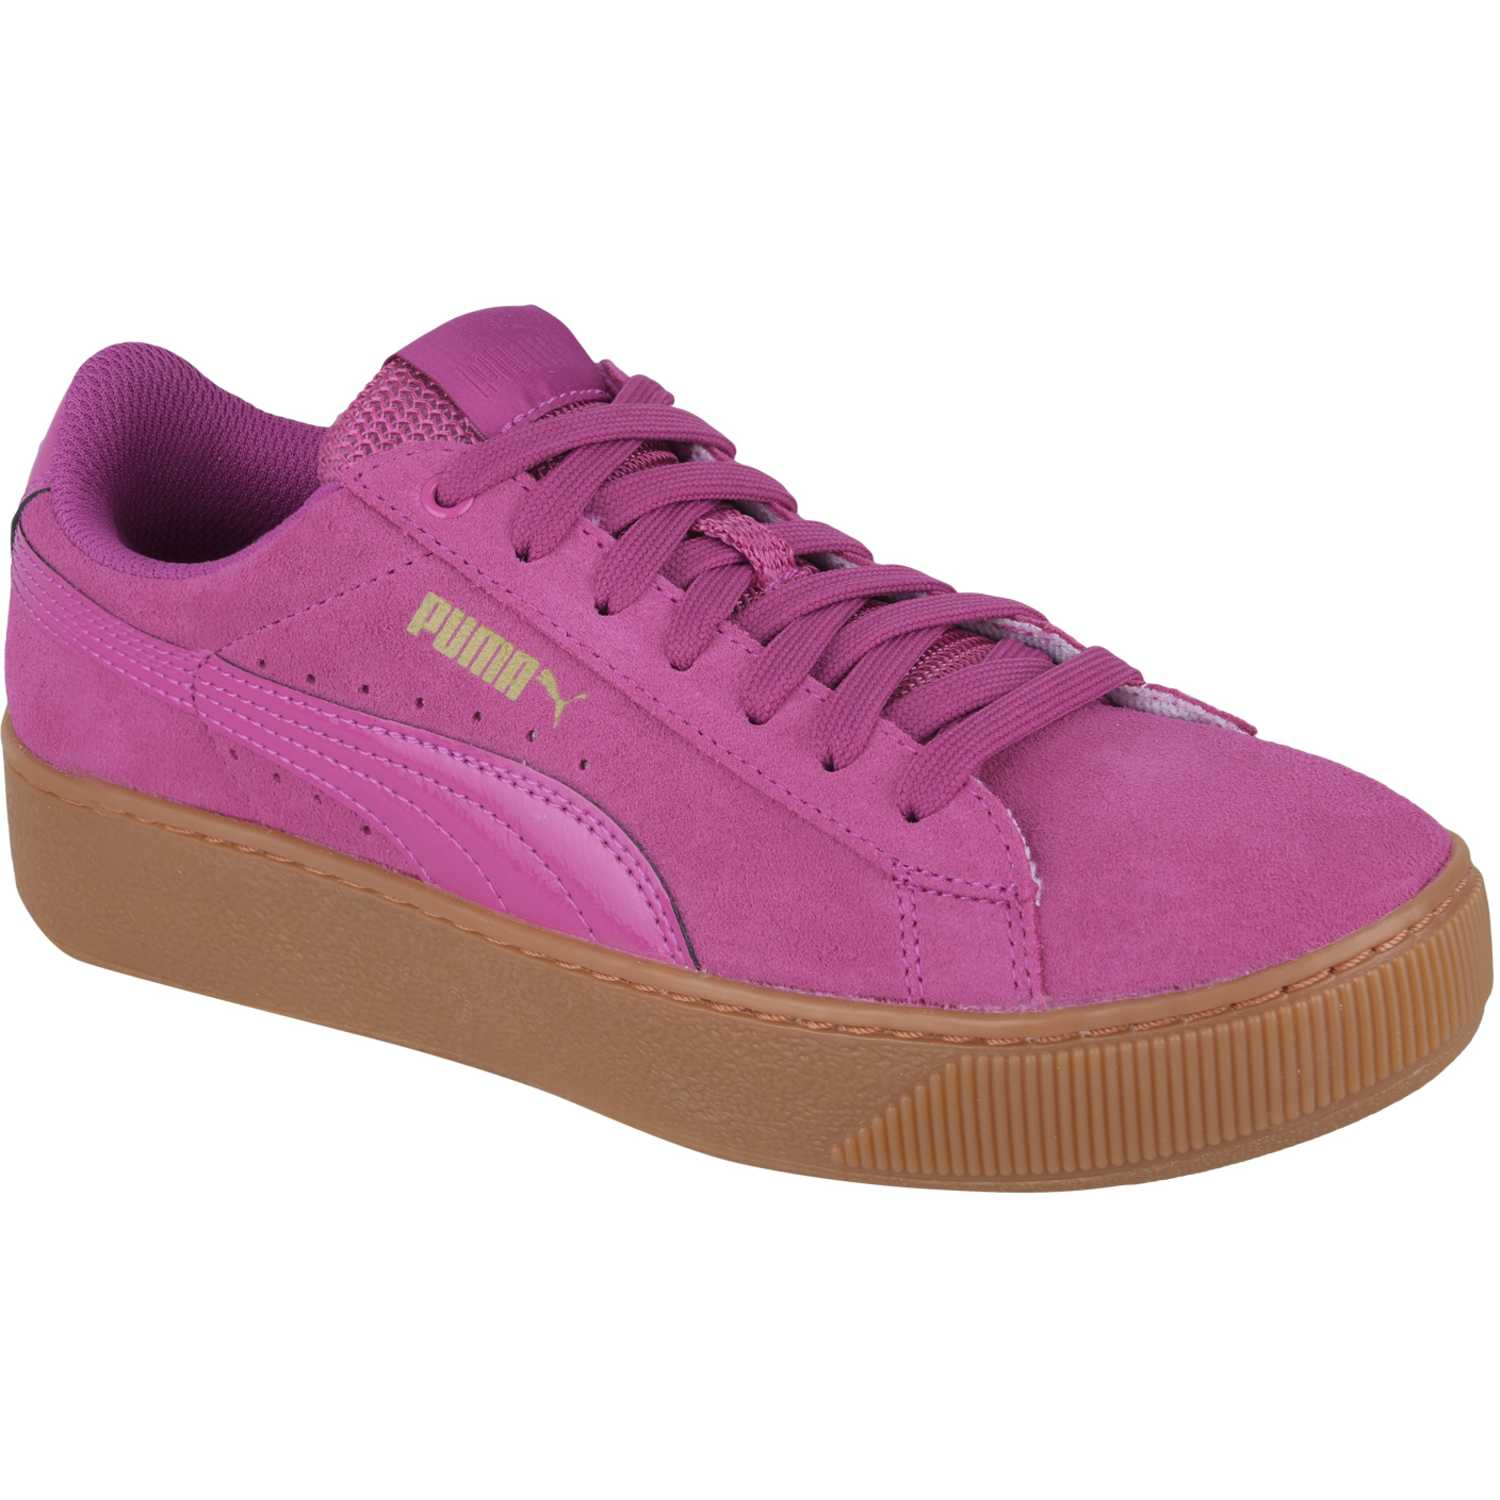 Puma vikky platform Fucsia / marrón Walking